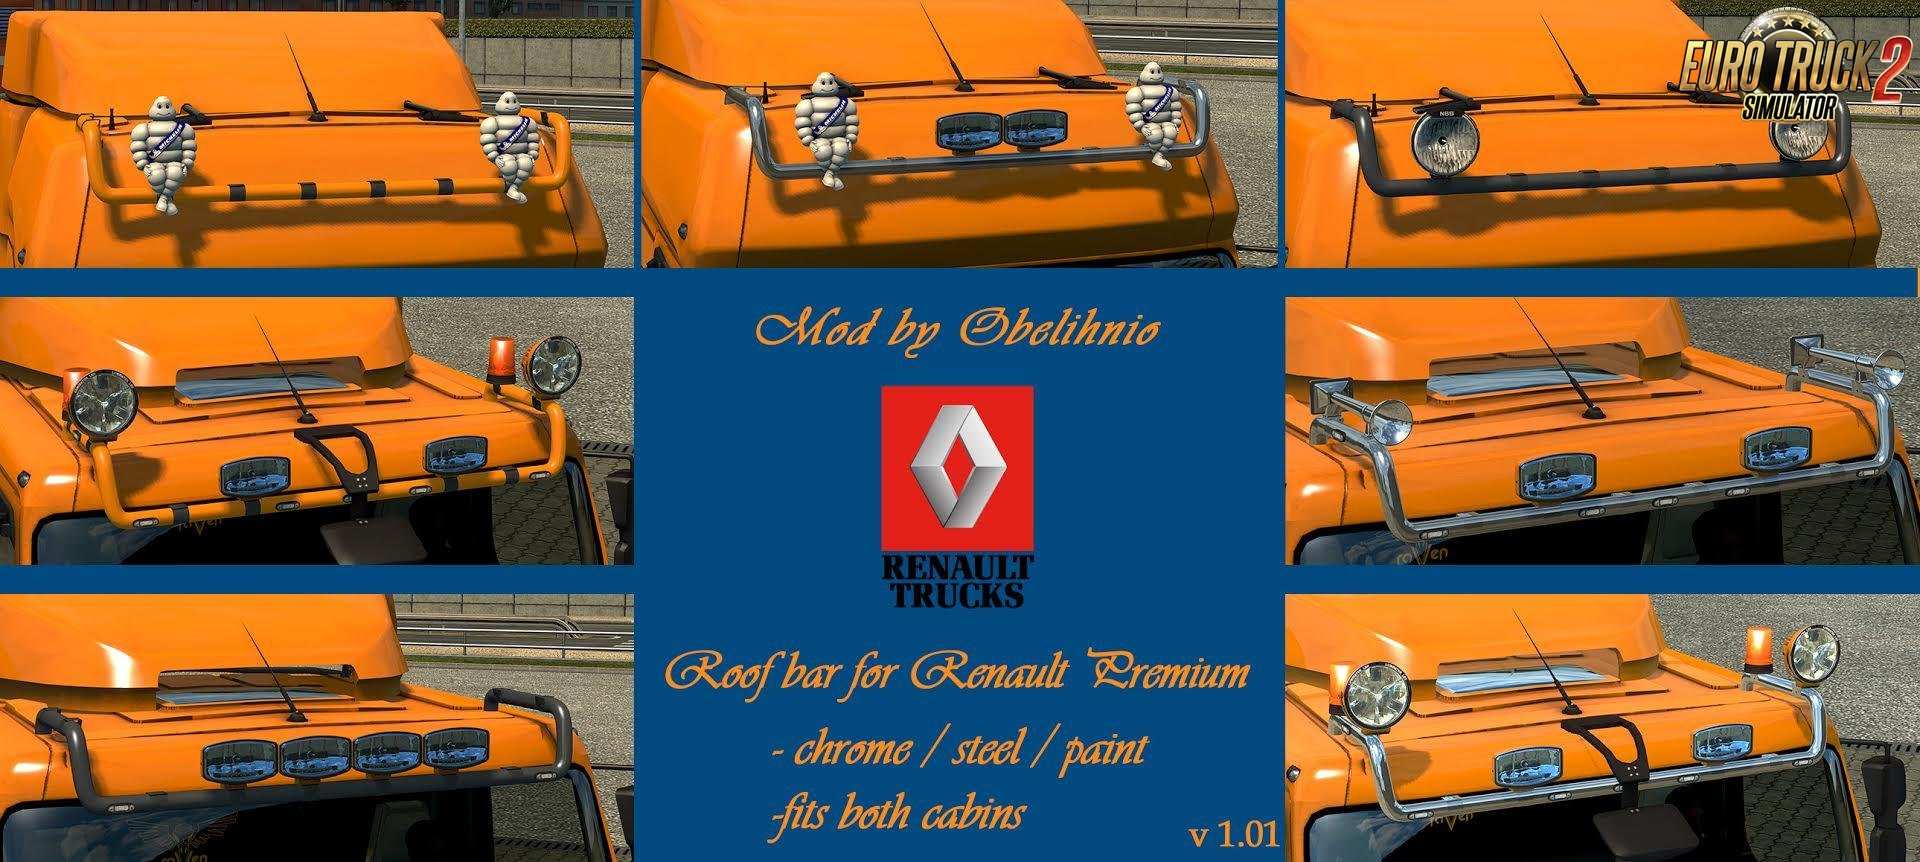 Roofbar for Renault Premium v1.01 by obelihnio [1.27.x]